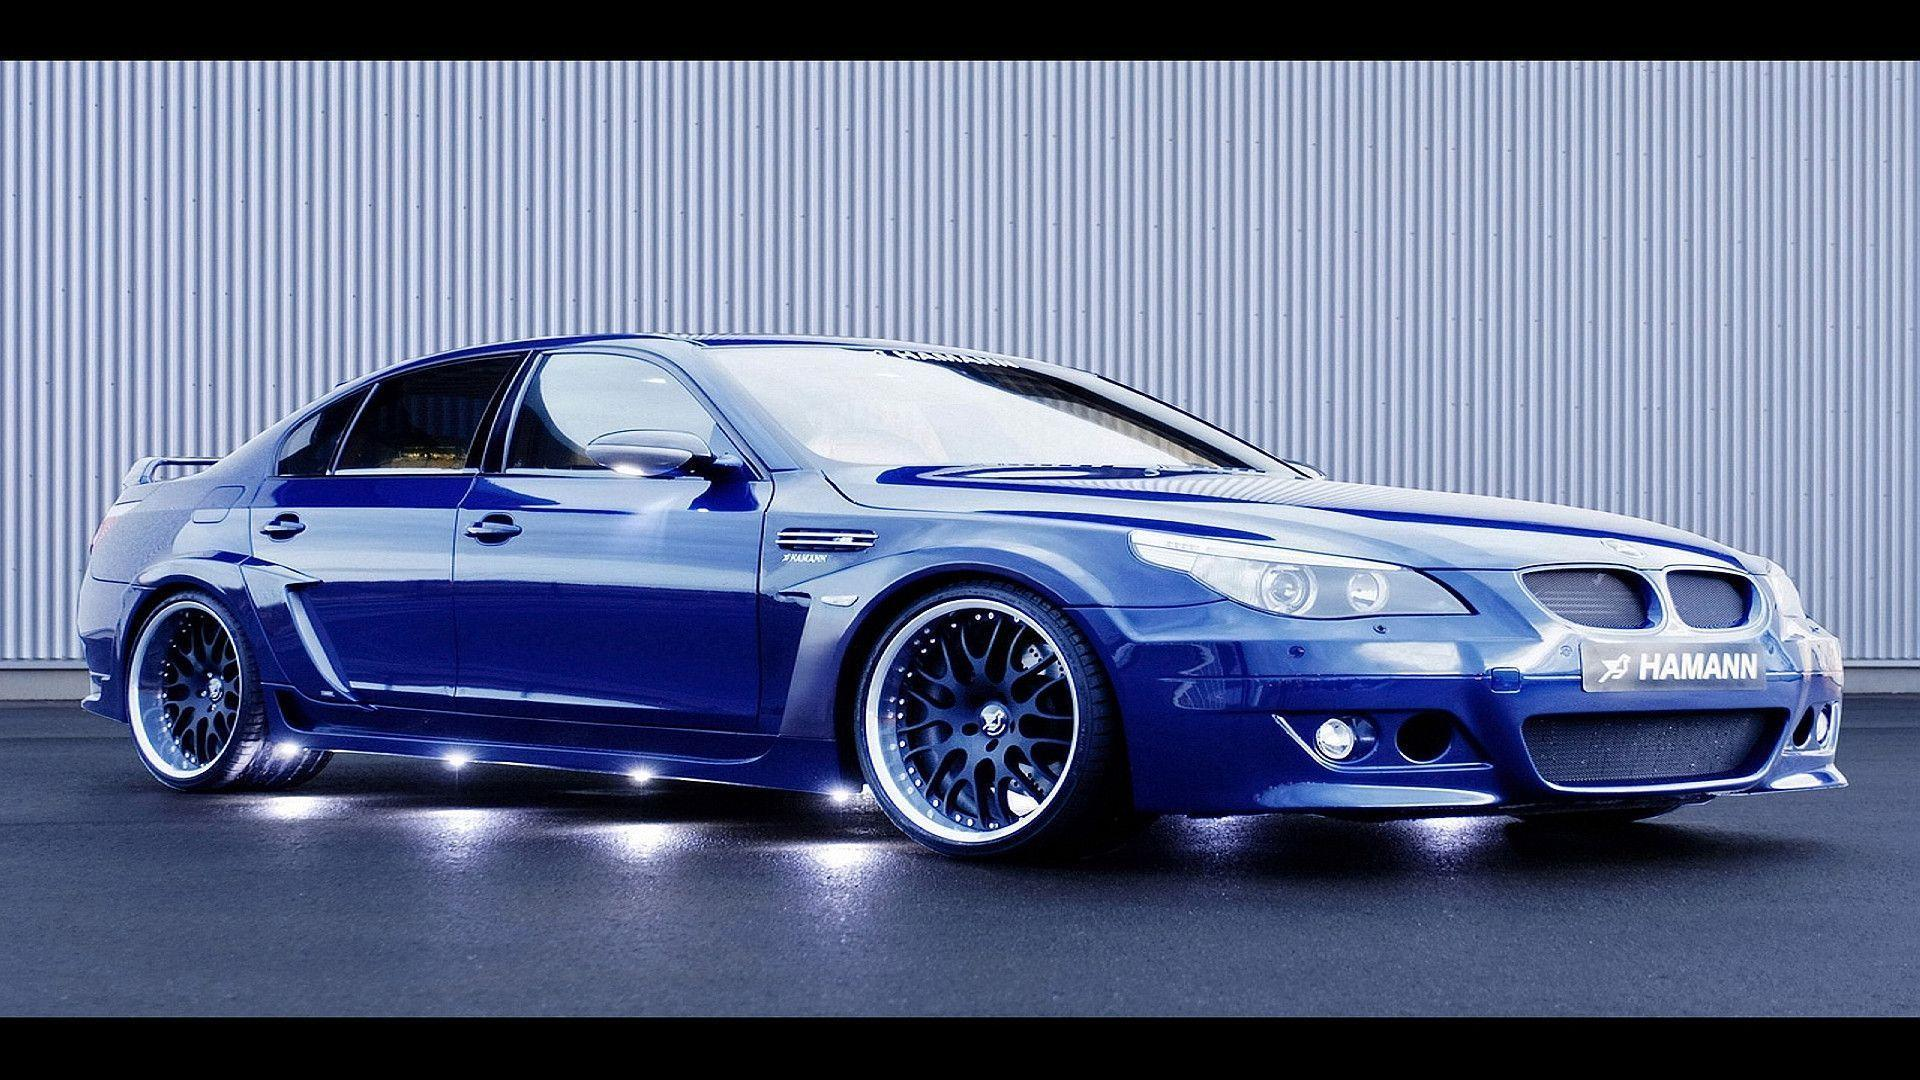 BMW Blue Car Wallpaper Backgrounds BMW Full Size Free Download 2612